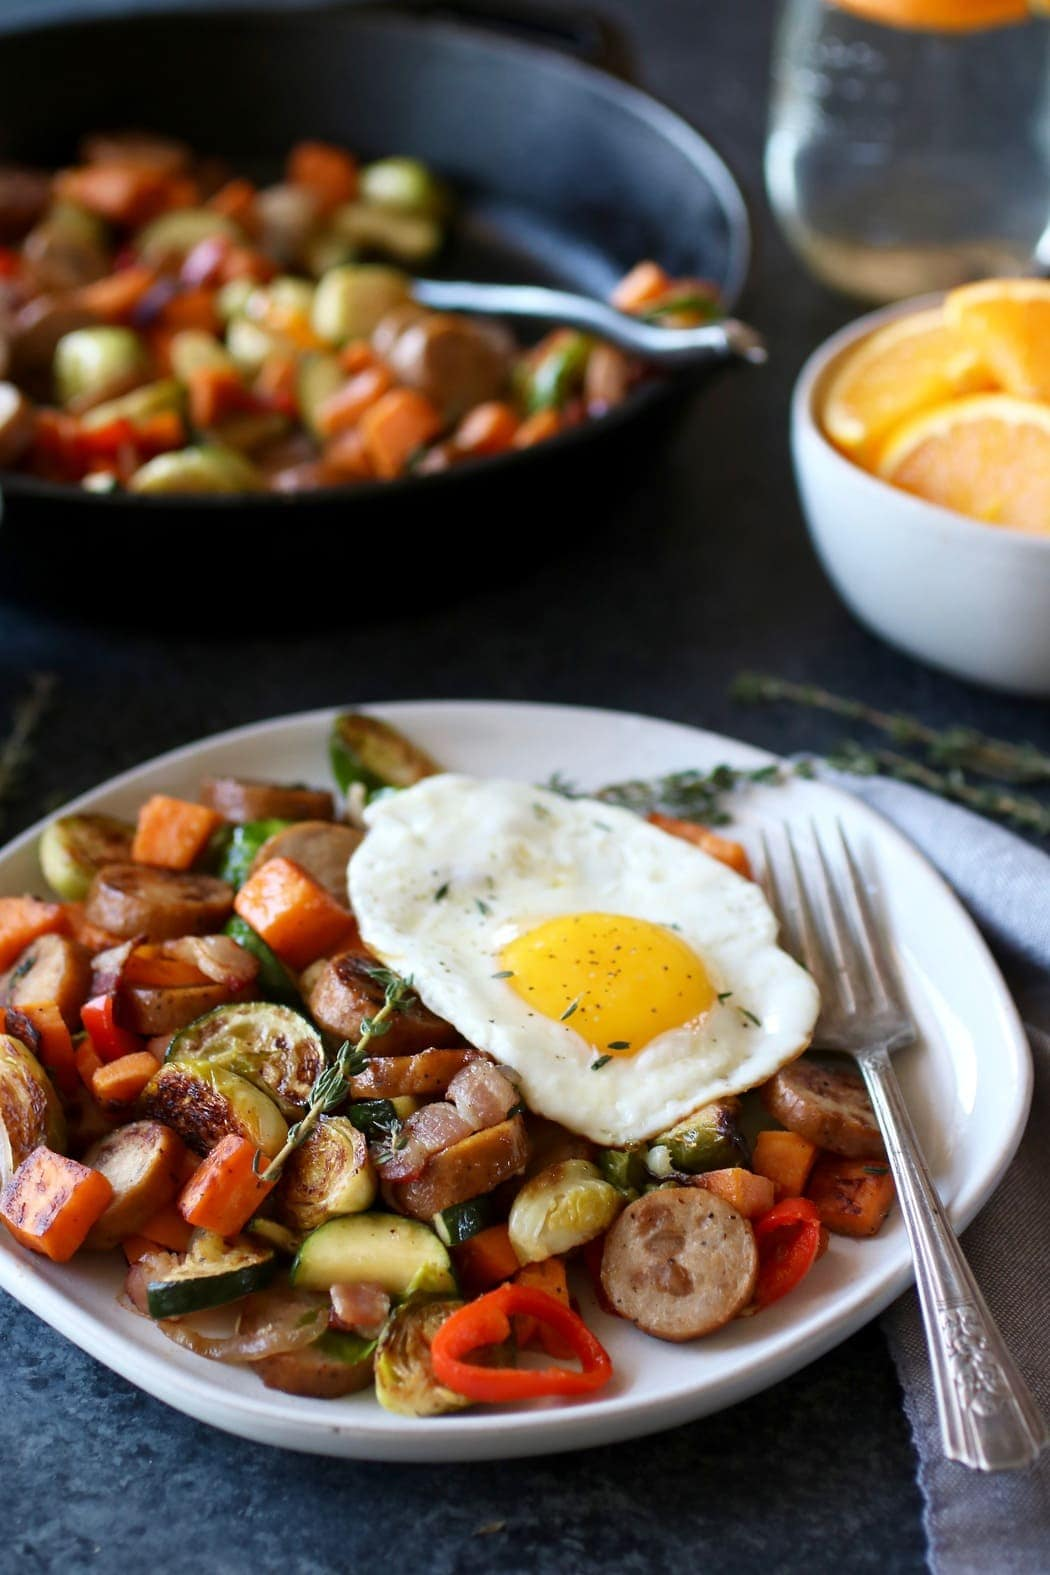 Plate filled with hash with a fried egg on top and fork on the side. Skillet of hash in the background as well as a bowl of orange slices